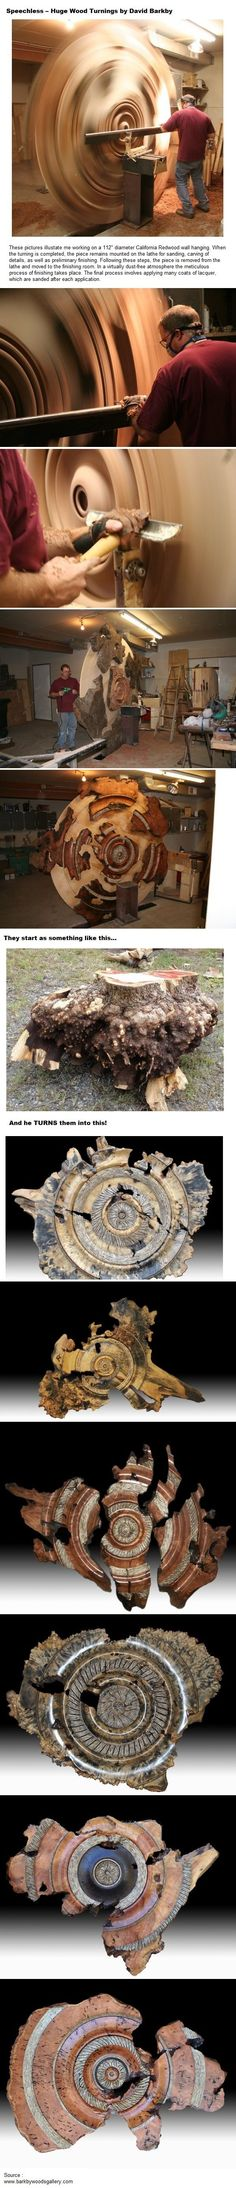 Speechless ..Huge Wood Turnings by David Barkby: